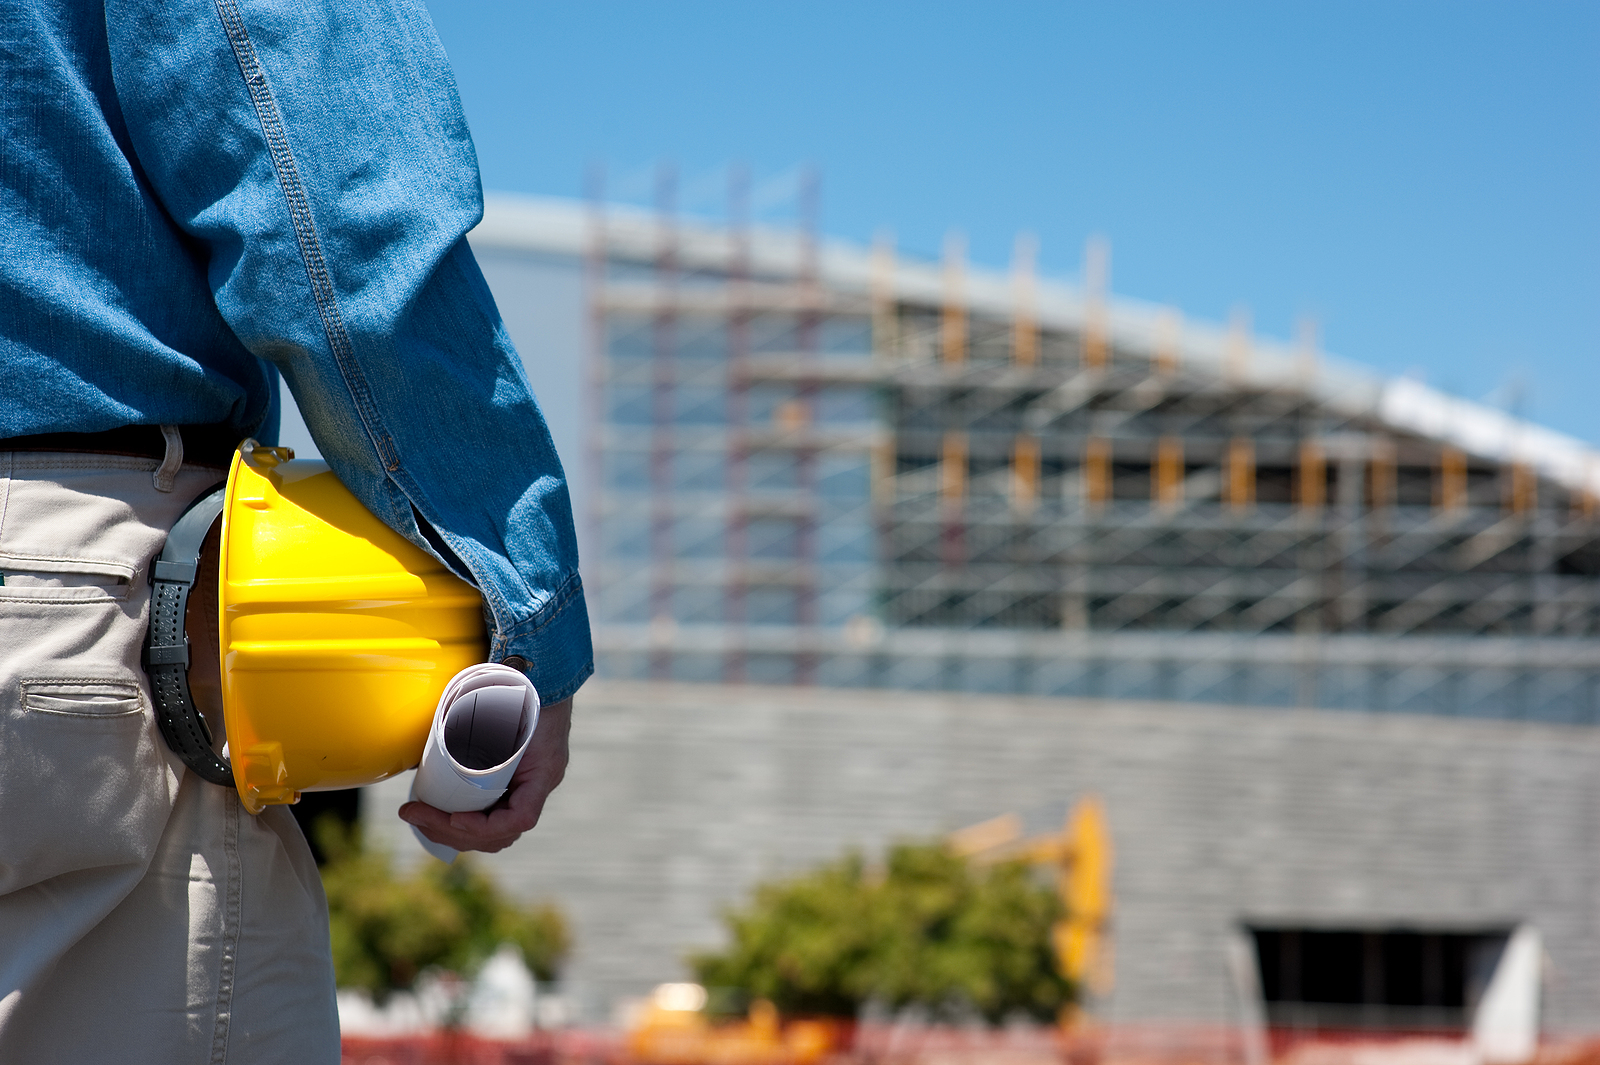 Construction Disruptions Settle After Initial Impacts